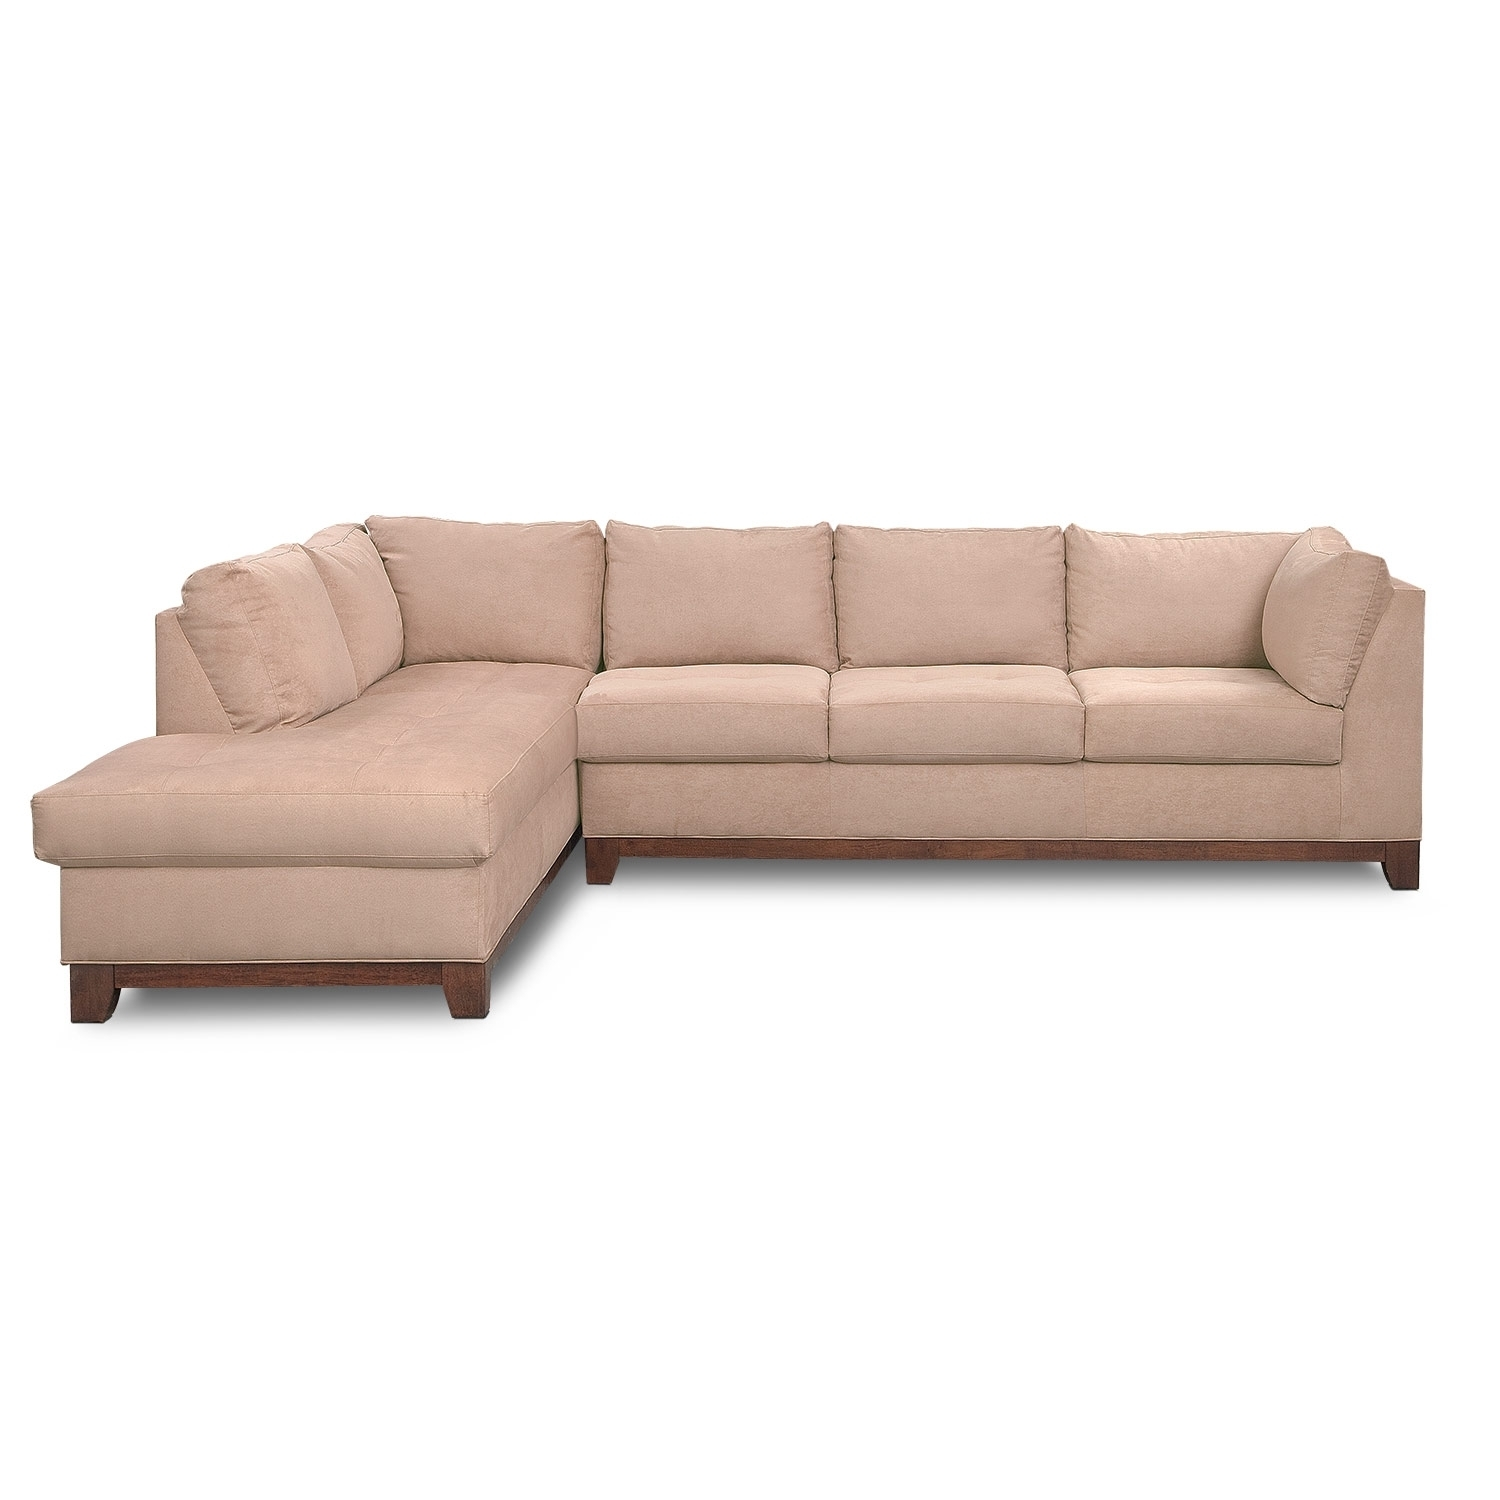 Stunning Value City Sectional Sofa 64 In Living Room Sectional Sofas Throughout Value City Sectional Sofas (View 9 of 10)